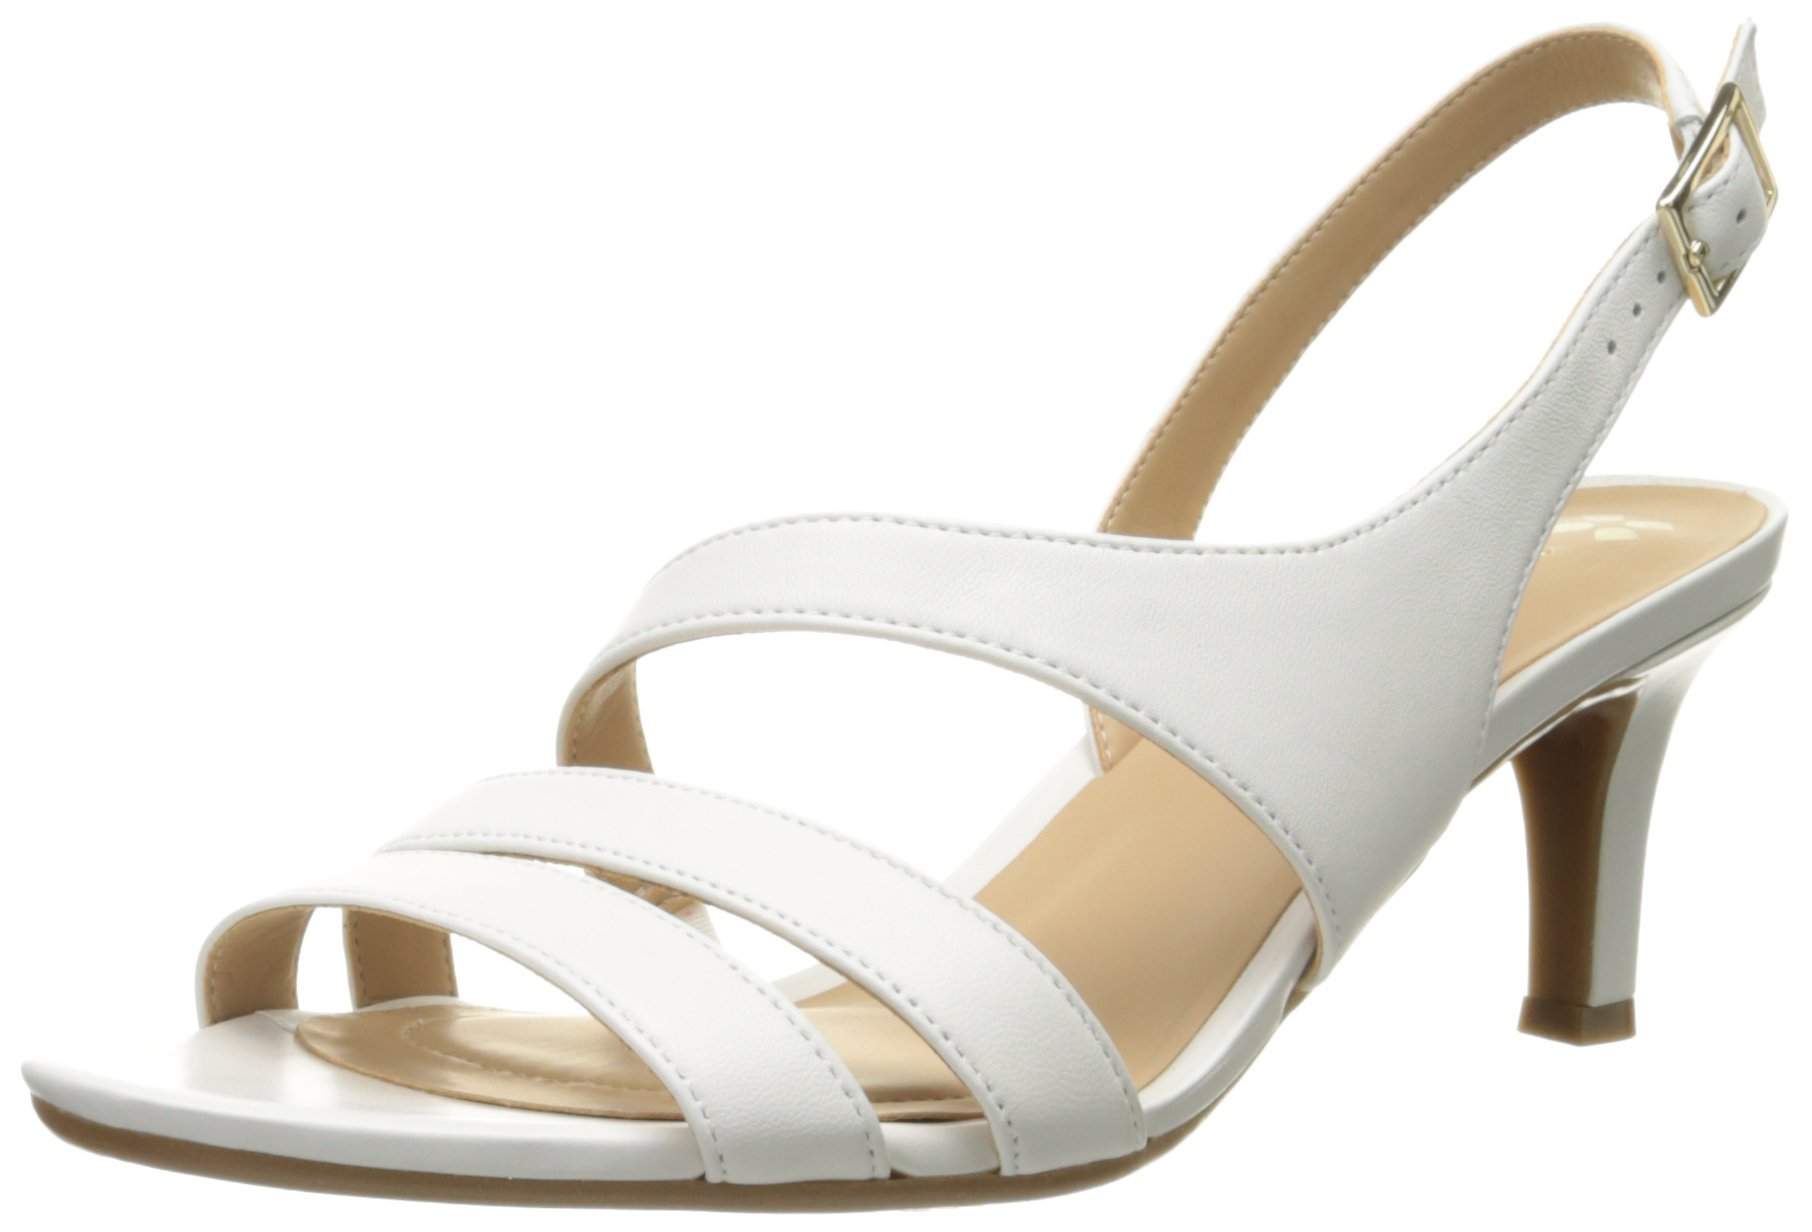 Naturalizer Women's Taimi Dress Sandal, White, 7 M US